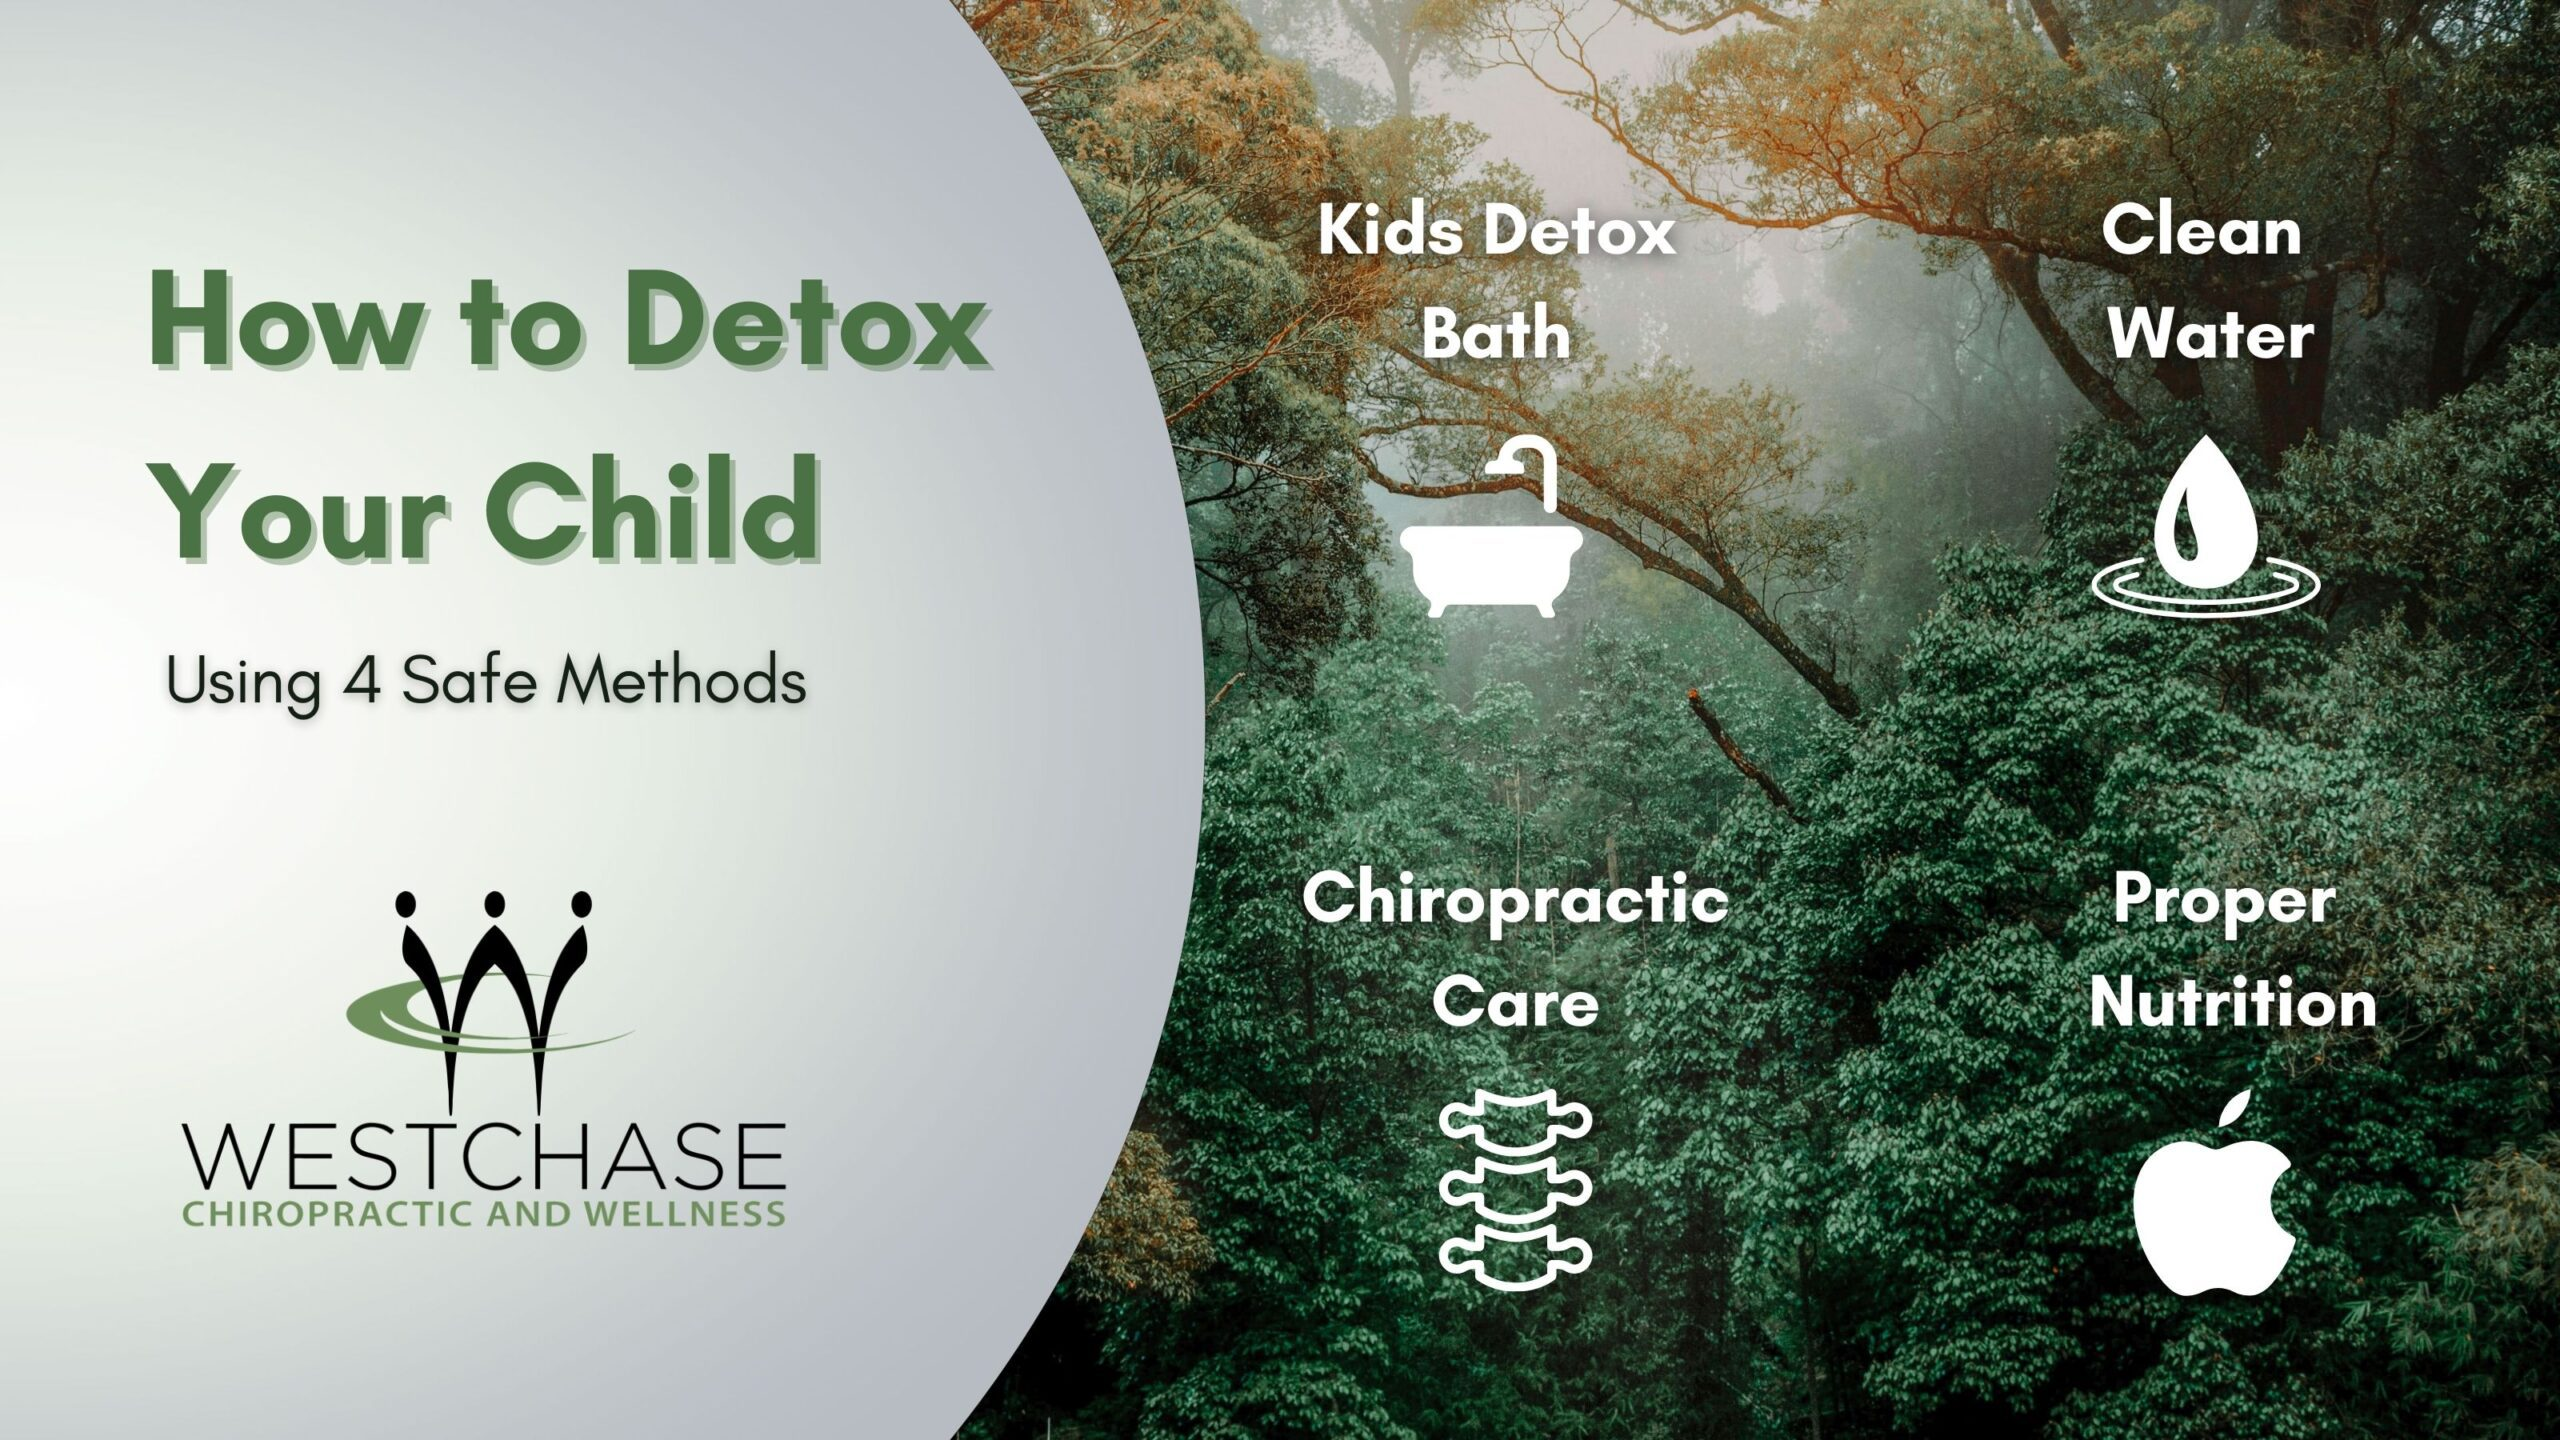 infographic of how to detox your child using 4 safe methods